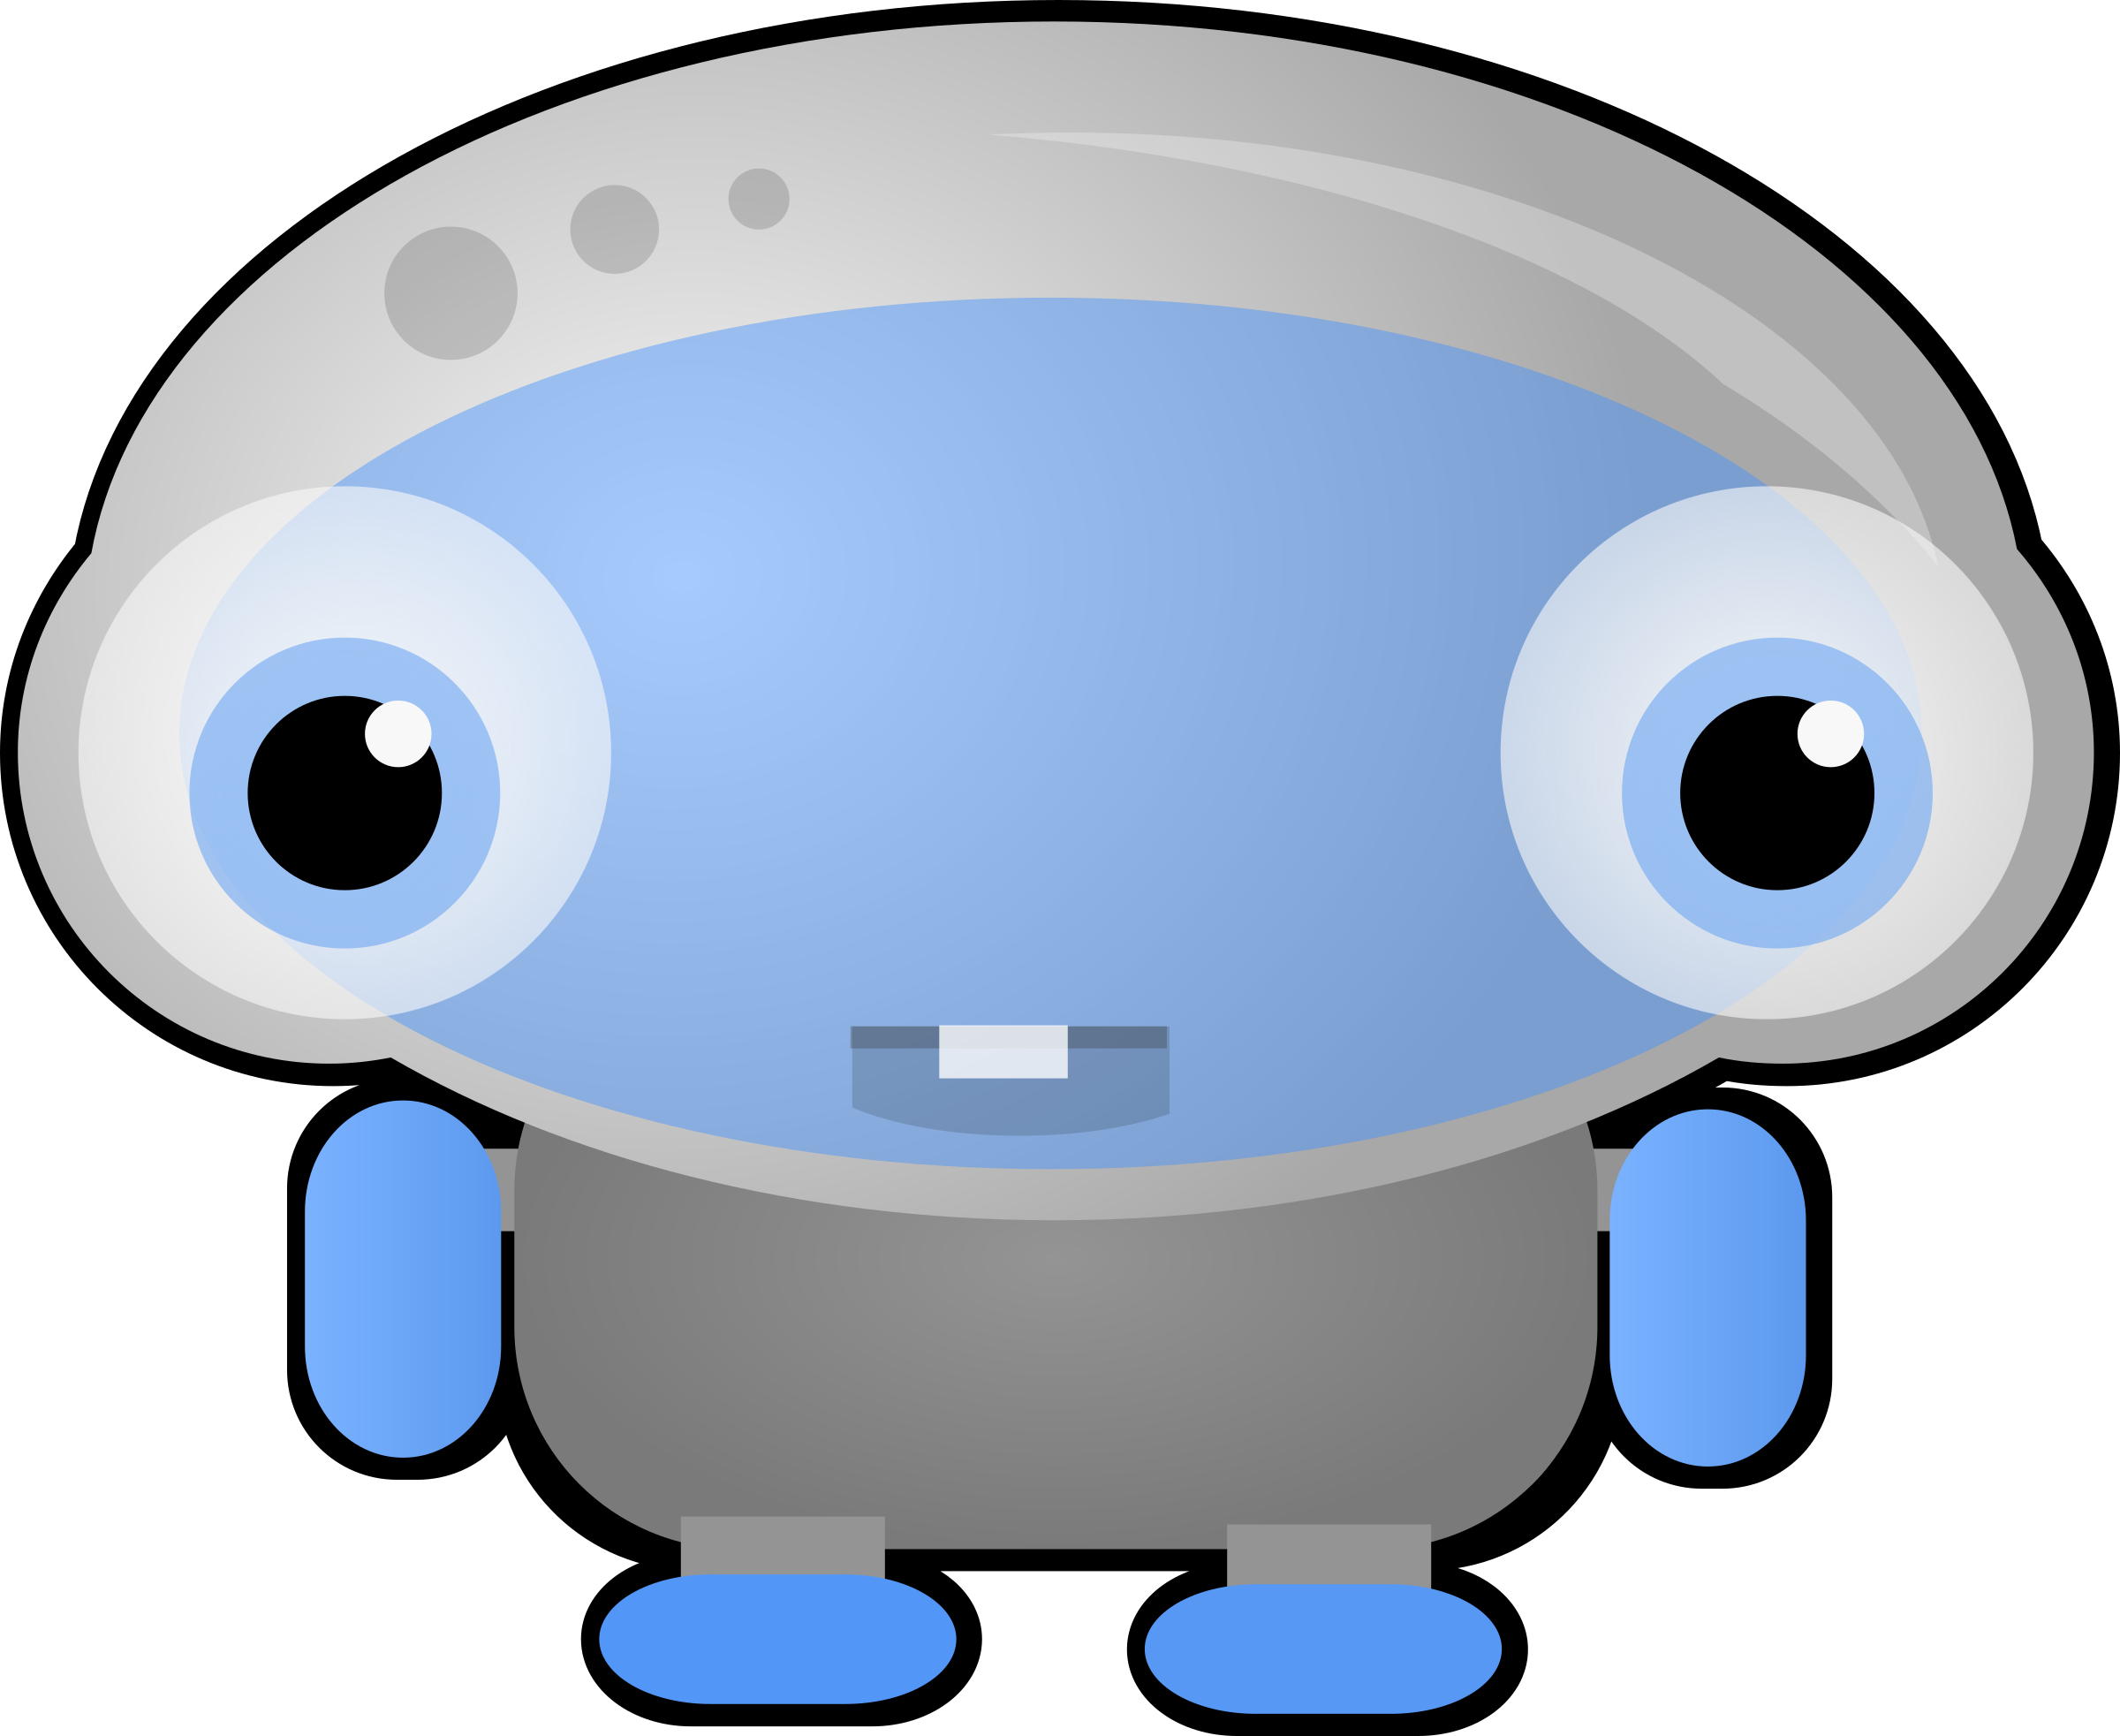 Strange blue robot creature by Magnesus